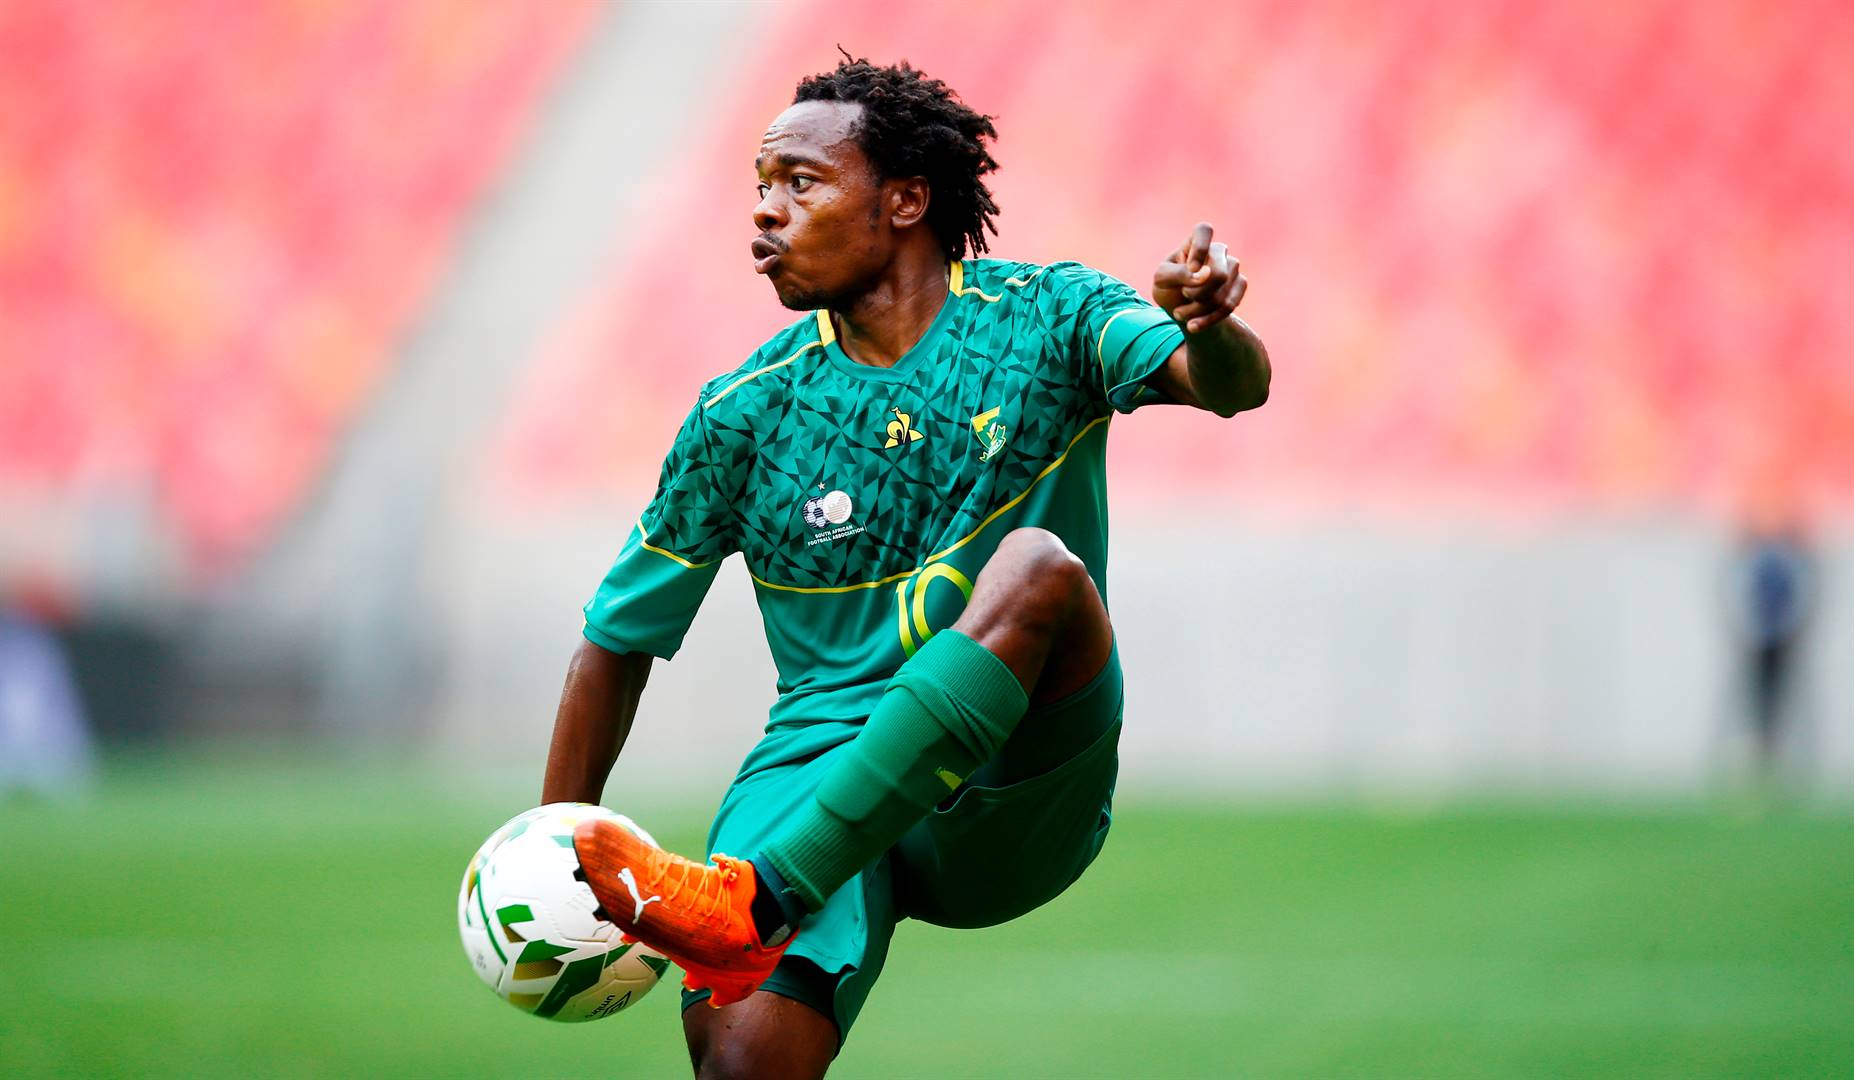 Percy Tau was instrumental in Bafana's back-to-back wins over São Tomé and Príncipe. Picture: Steve Haag / Gallo Images